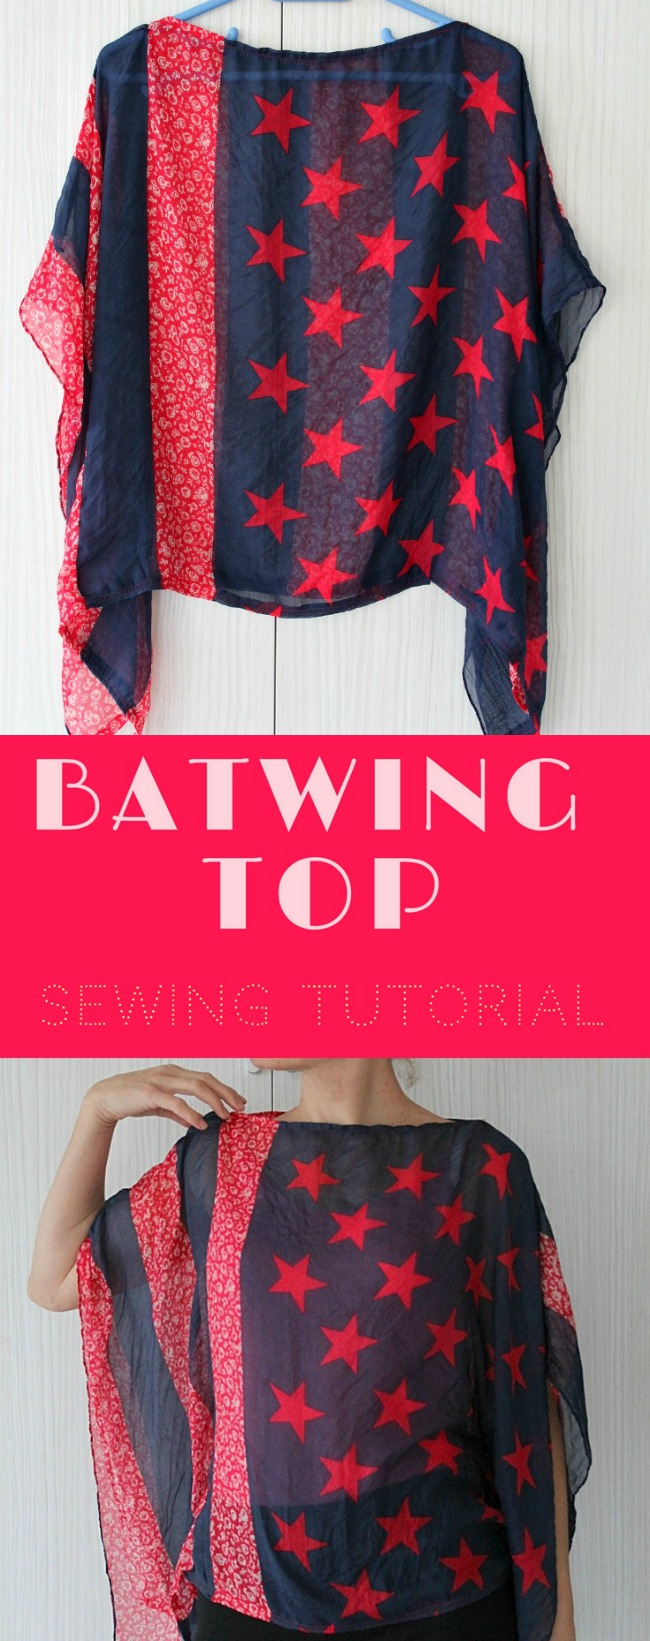 Batwing top tutorial